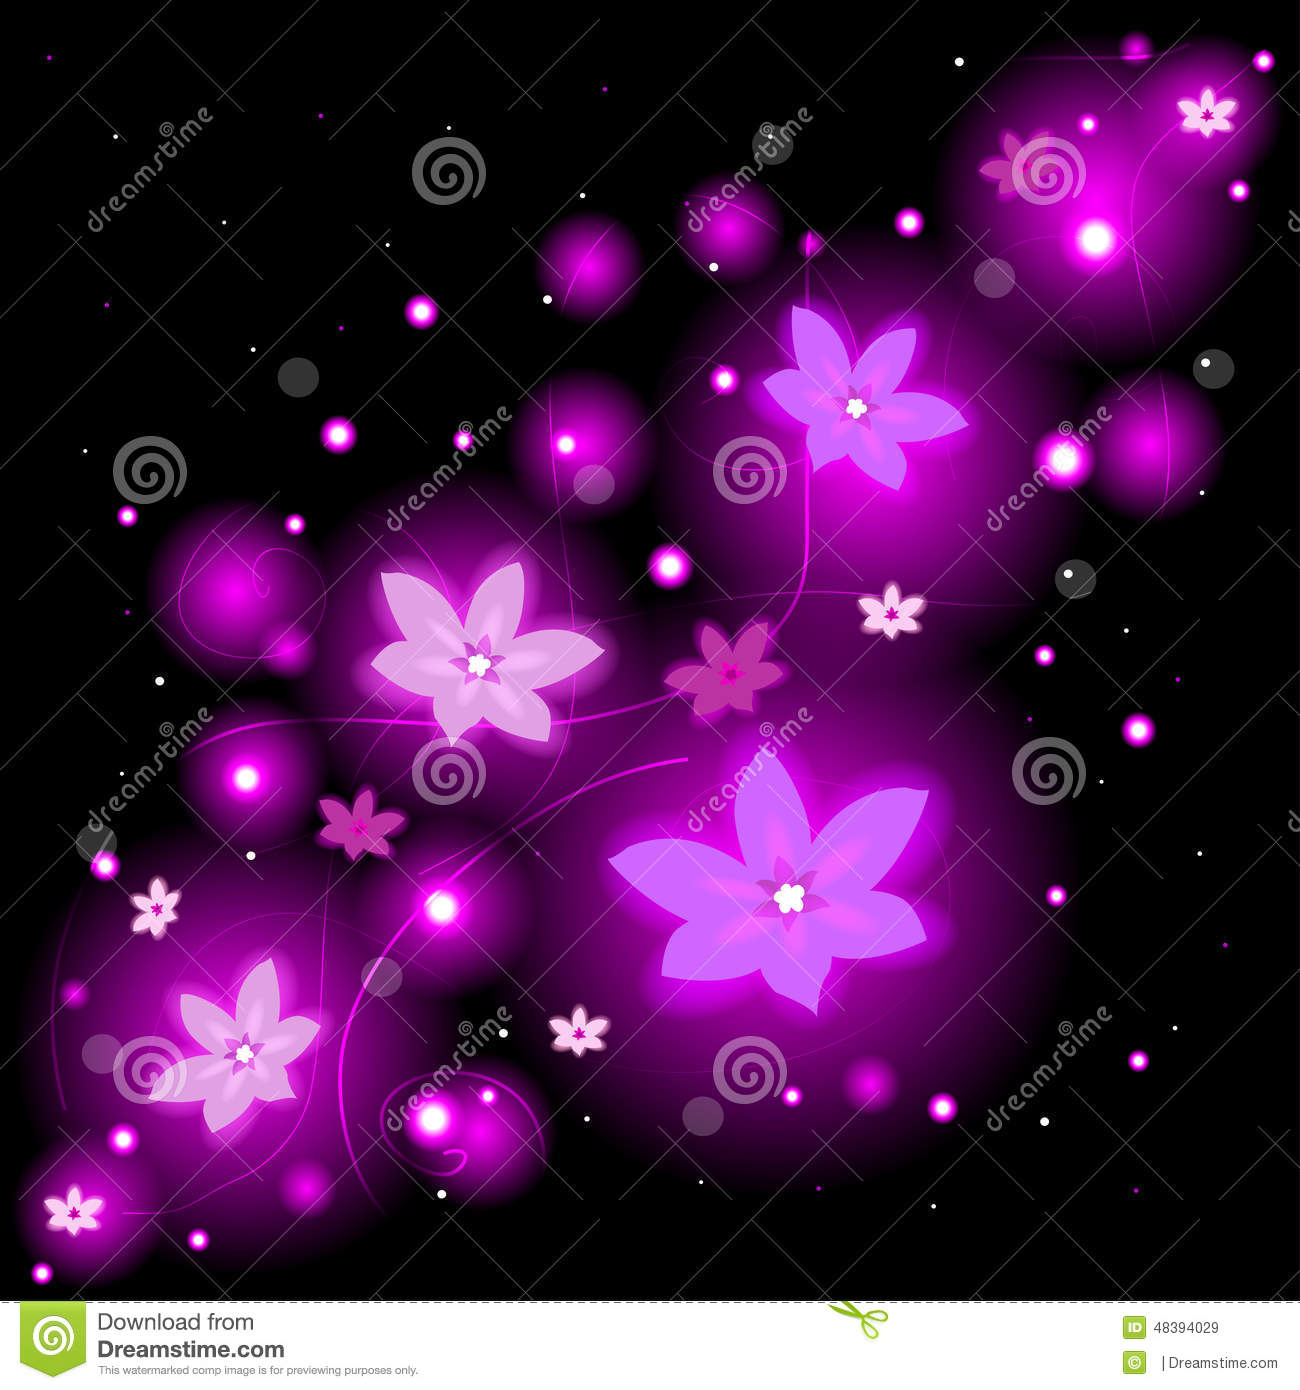 Beautiful Background With Glowing Flowers And Sparkles Stock Vector